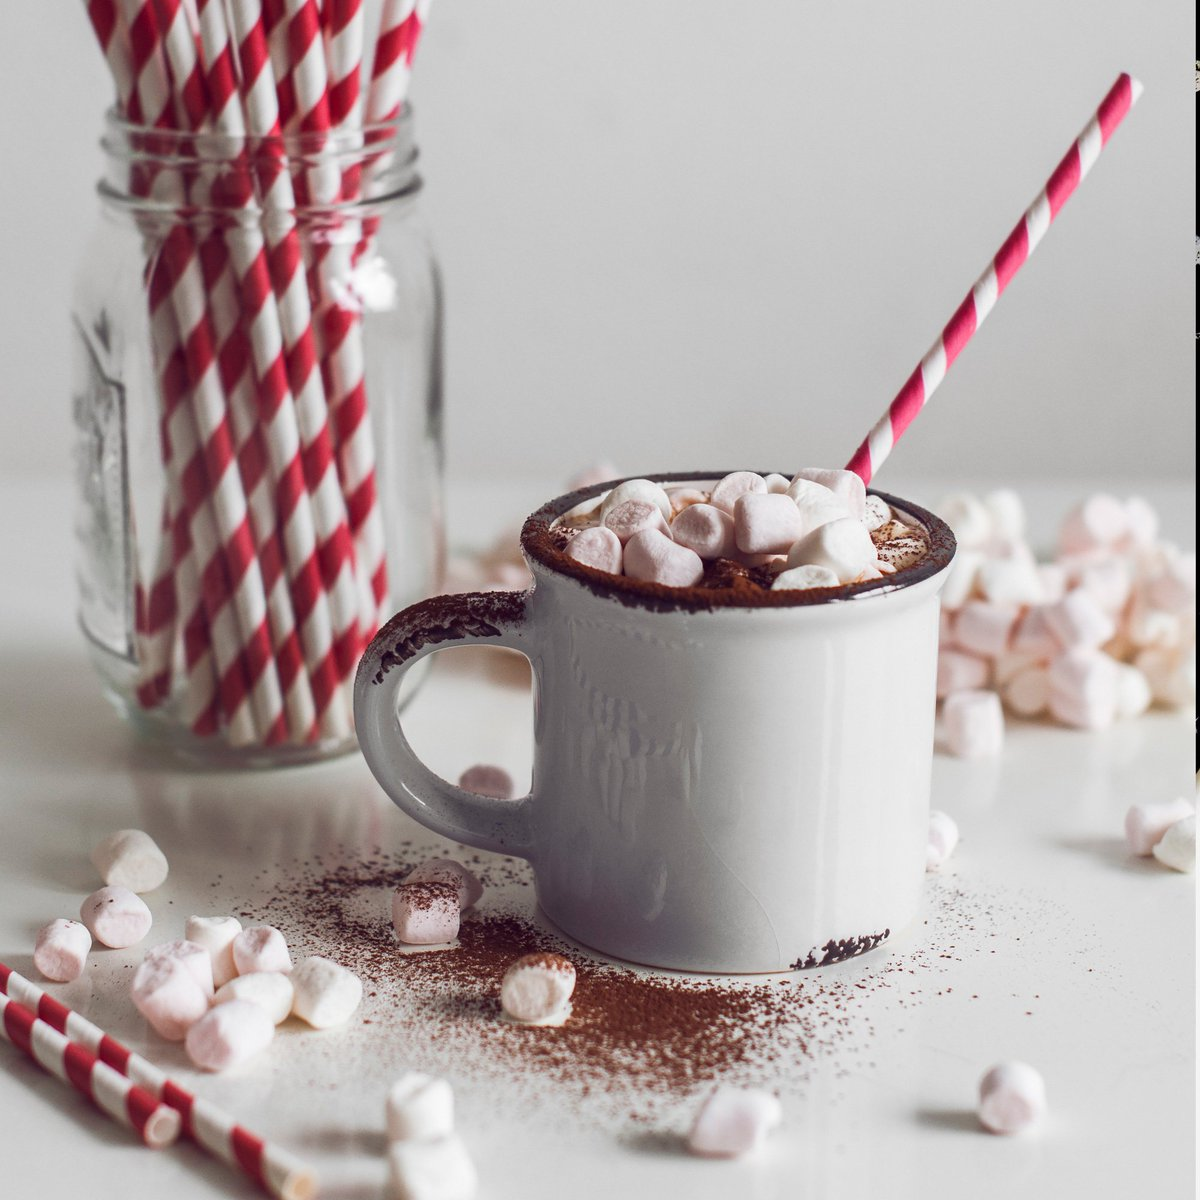 Winter checklist: Stay cozy, stylish & drink lots of hot chocolate. https://t.co/XueFLEykAU